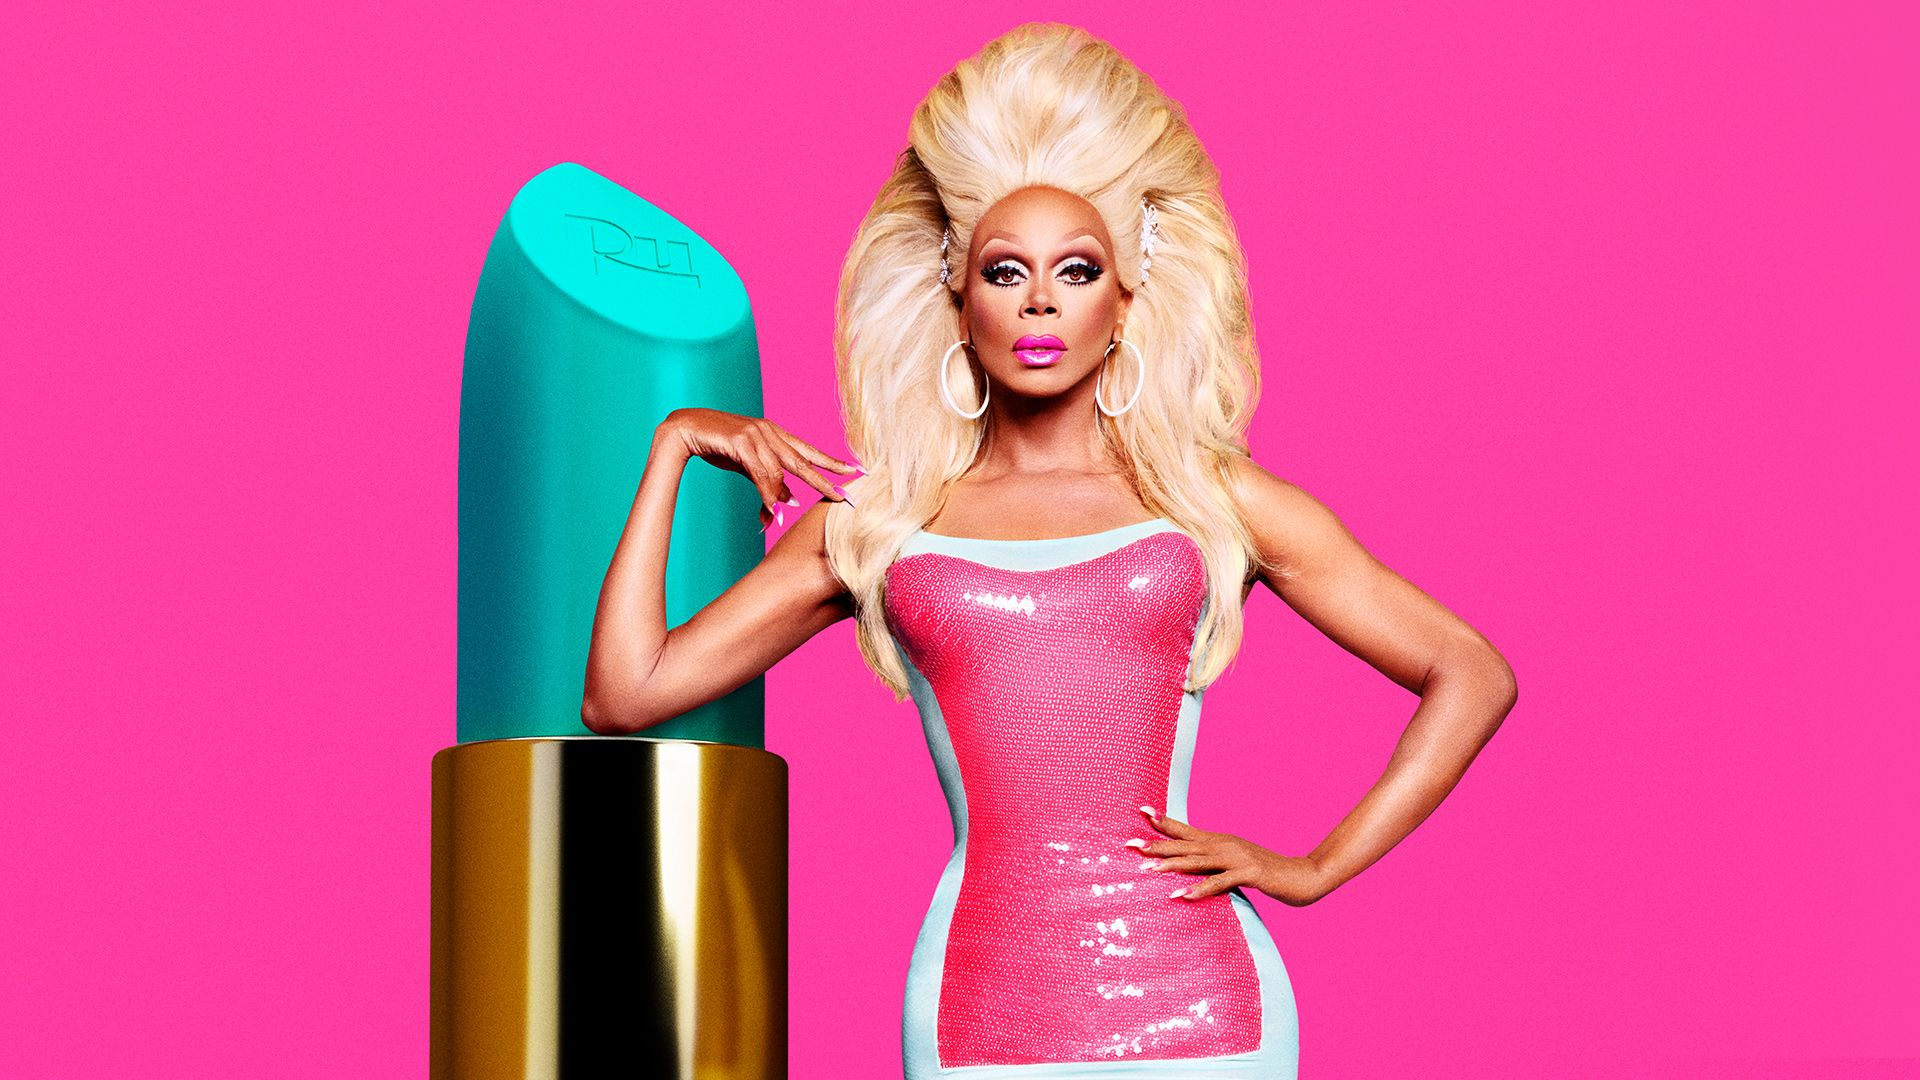 RuPauls Drag Race  Watch Selected Video Clips  VH1